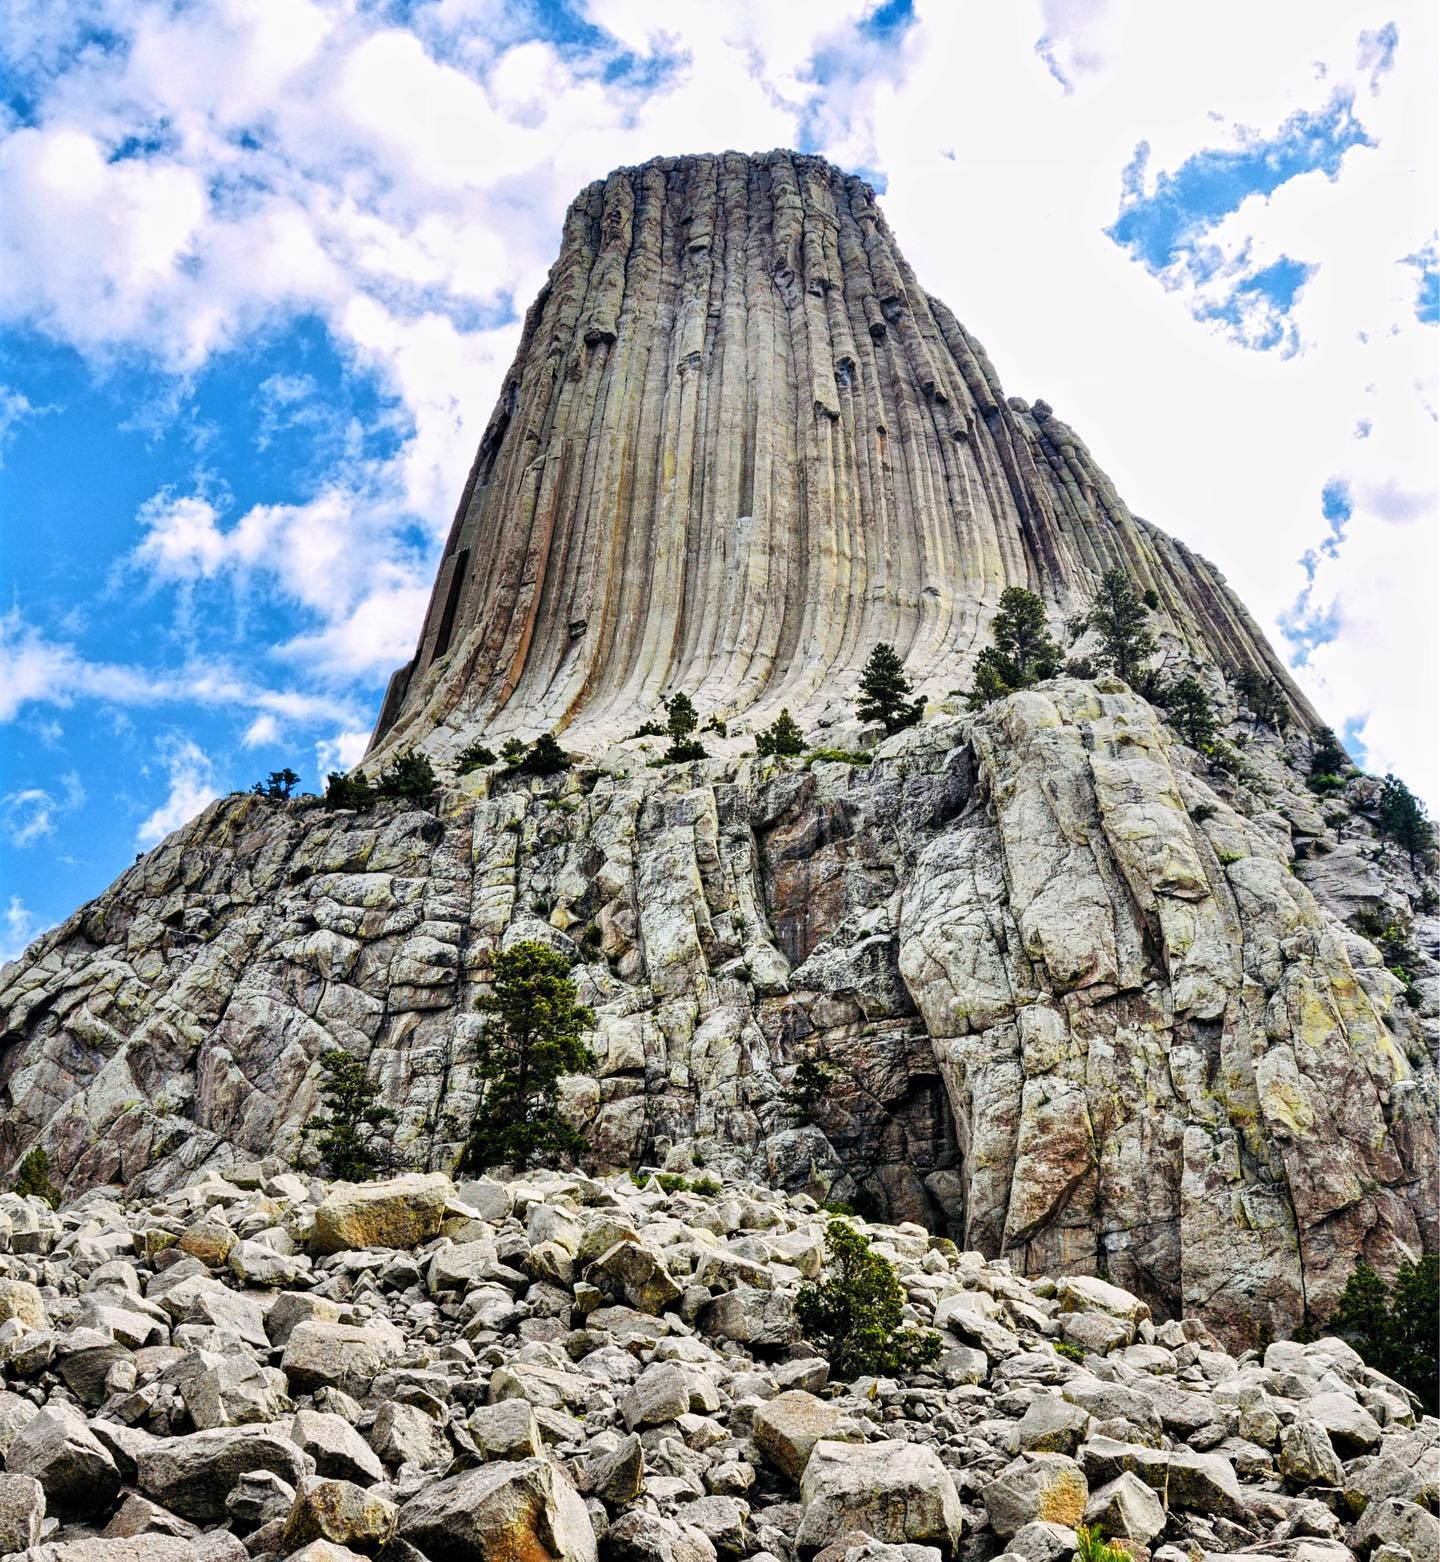 Devils Tower NM, Wyoming  Devils Tower is located on the edge of the Black Hills in Wyoming. President Theodore Roosevelt established the first national monument, Devils Tower in Wyoming, on September 24, 1906.  #usa #usatravel #usatrip #usatravels #usareisen #usaroadtrip #usaaddicted #usaphotography #usaphotographer #usaliebe #usalove #wyoming #explorewyoming #wyomingphotographer #devilstower #devilstowernationalmonument #travelphotography #travelpics #instapic #landscapephotography #reisefoto #reiseliebe #travelblogger #reiseblogger #usablogger #traveladdict #reiselust #instatraveling #nature_perfection #naturephotography